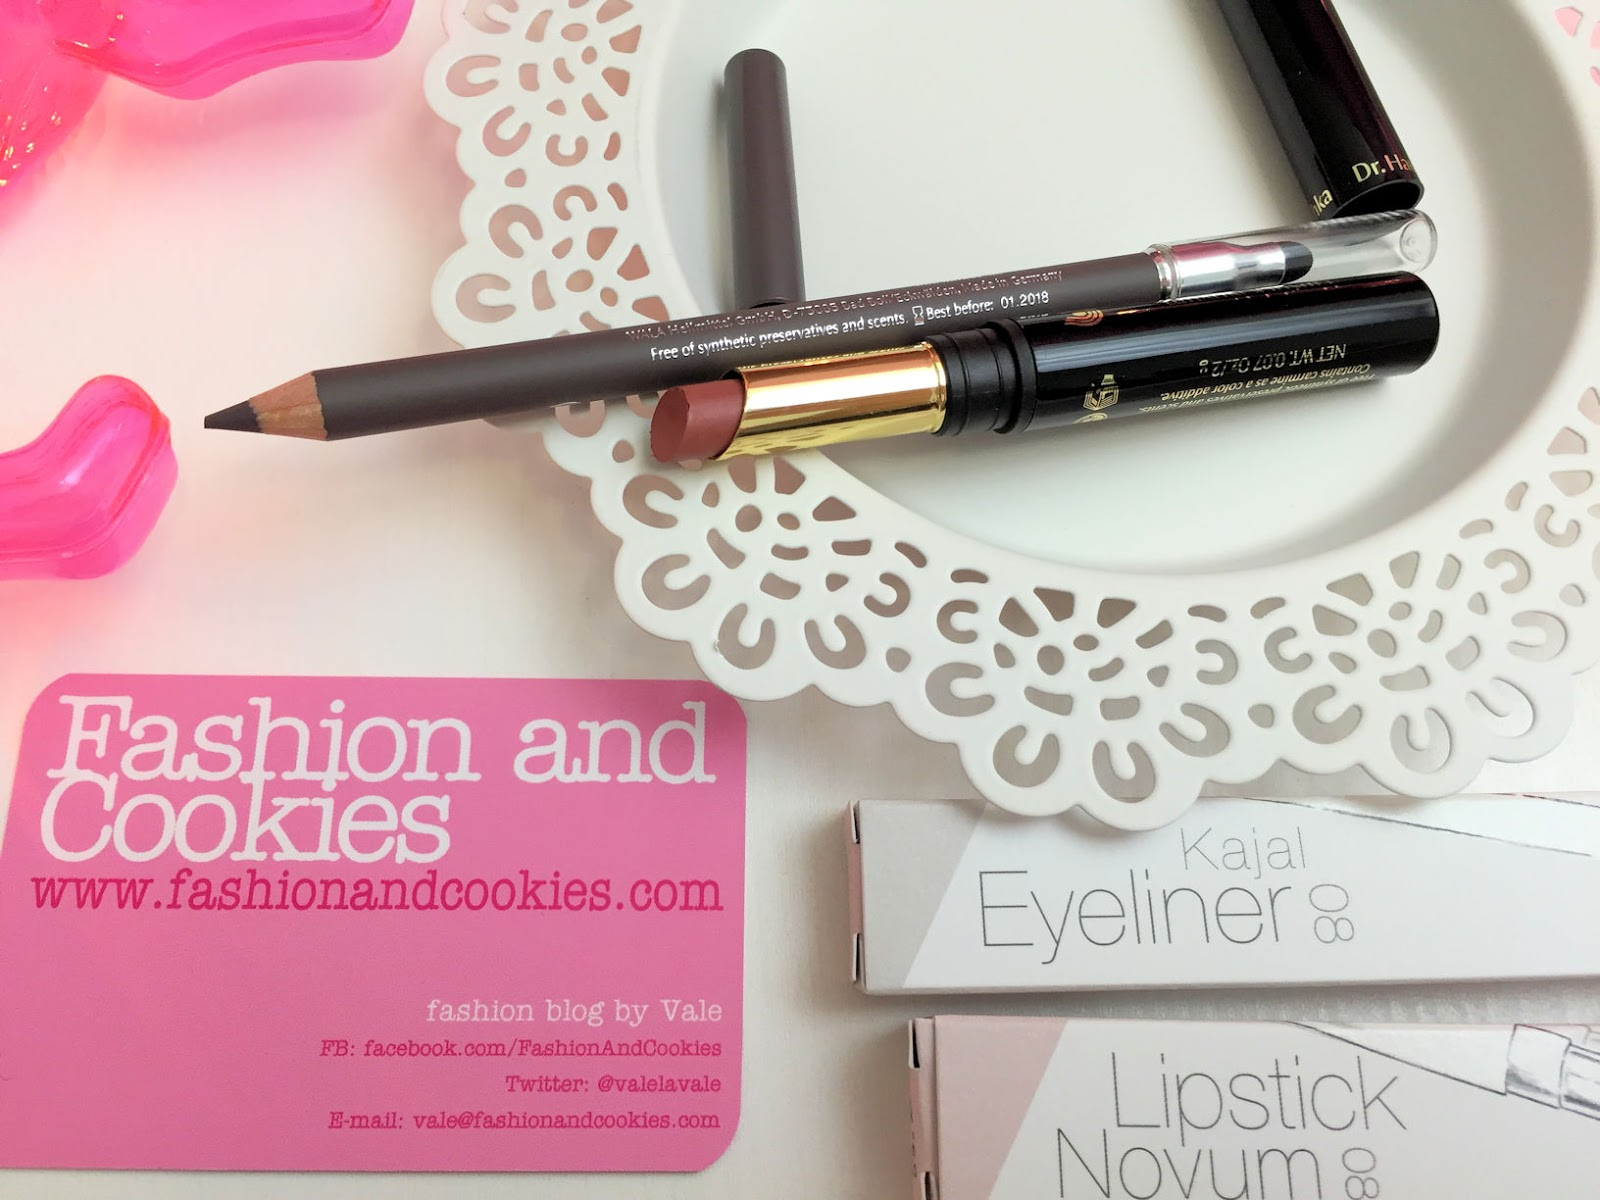 Dr. Hauschka kajal eyeliner and lipstick in maple glow on Fashion and Cookies  beauty blog, beauty blogger